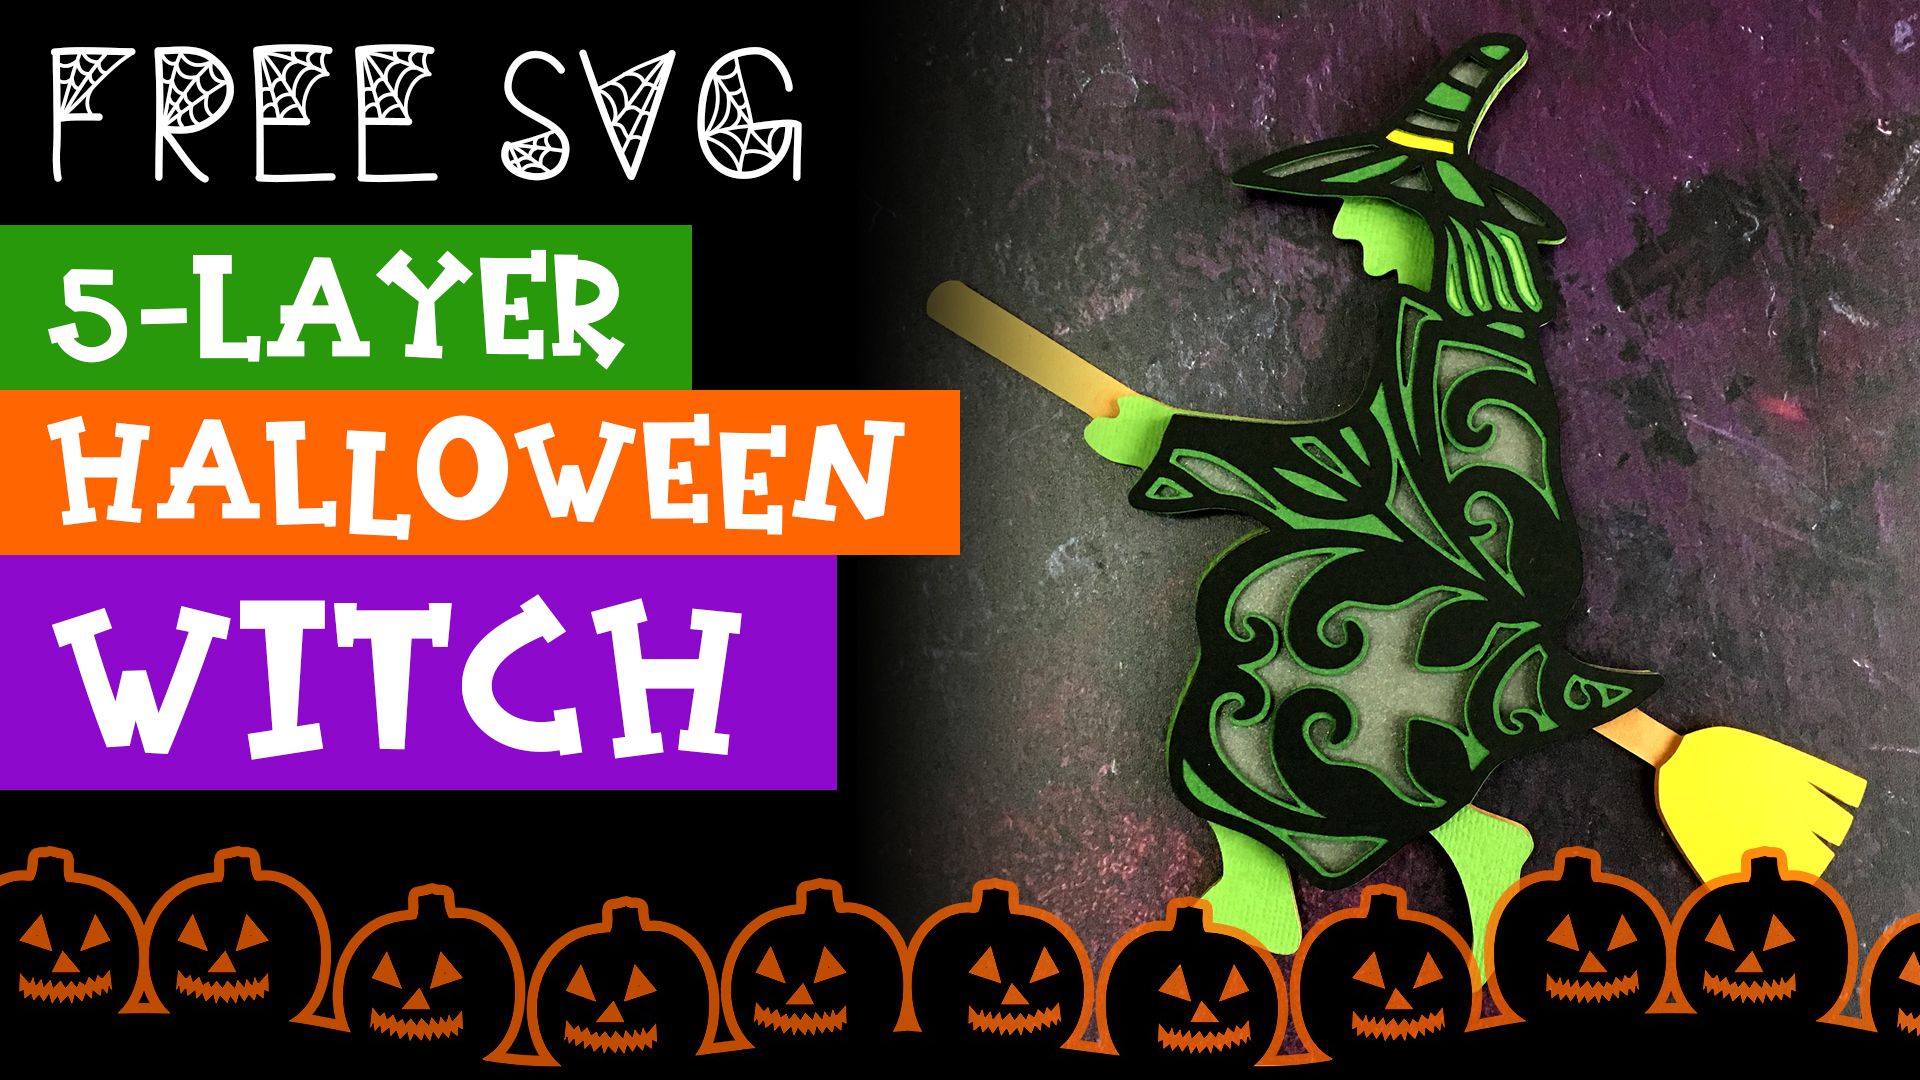 Free Layered Witch SVG for Halloween